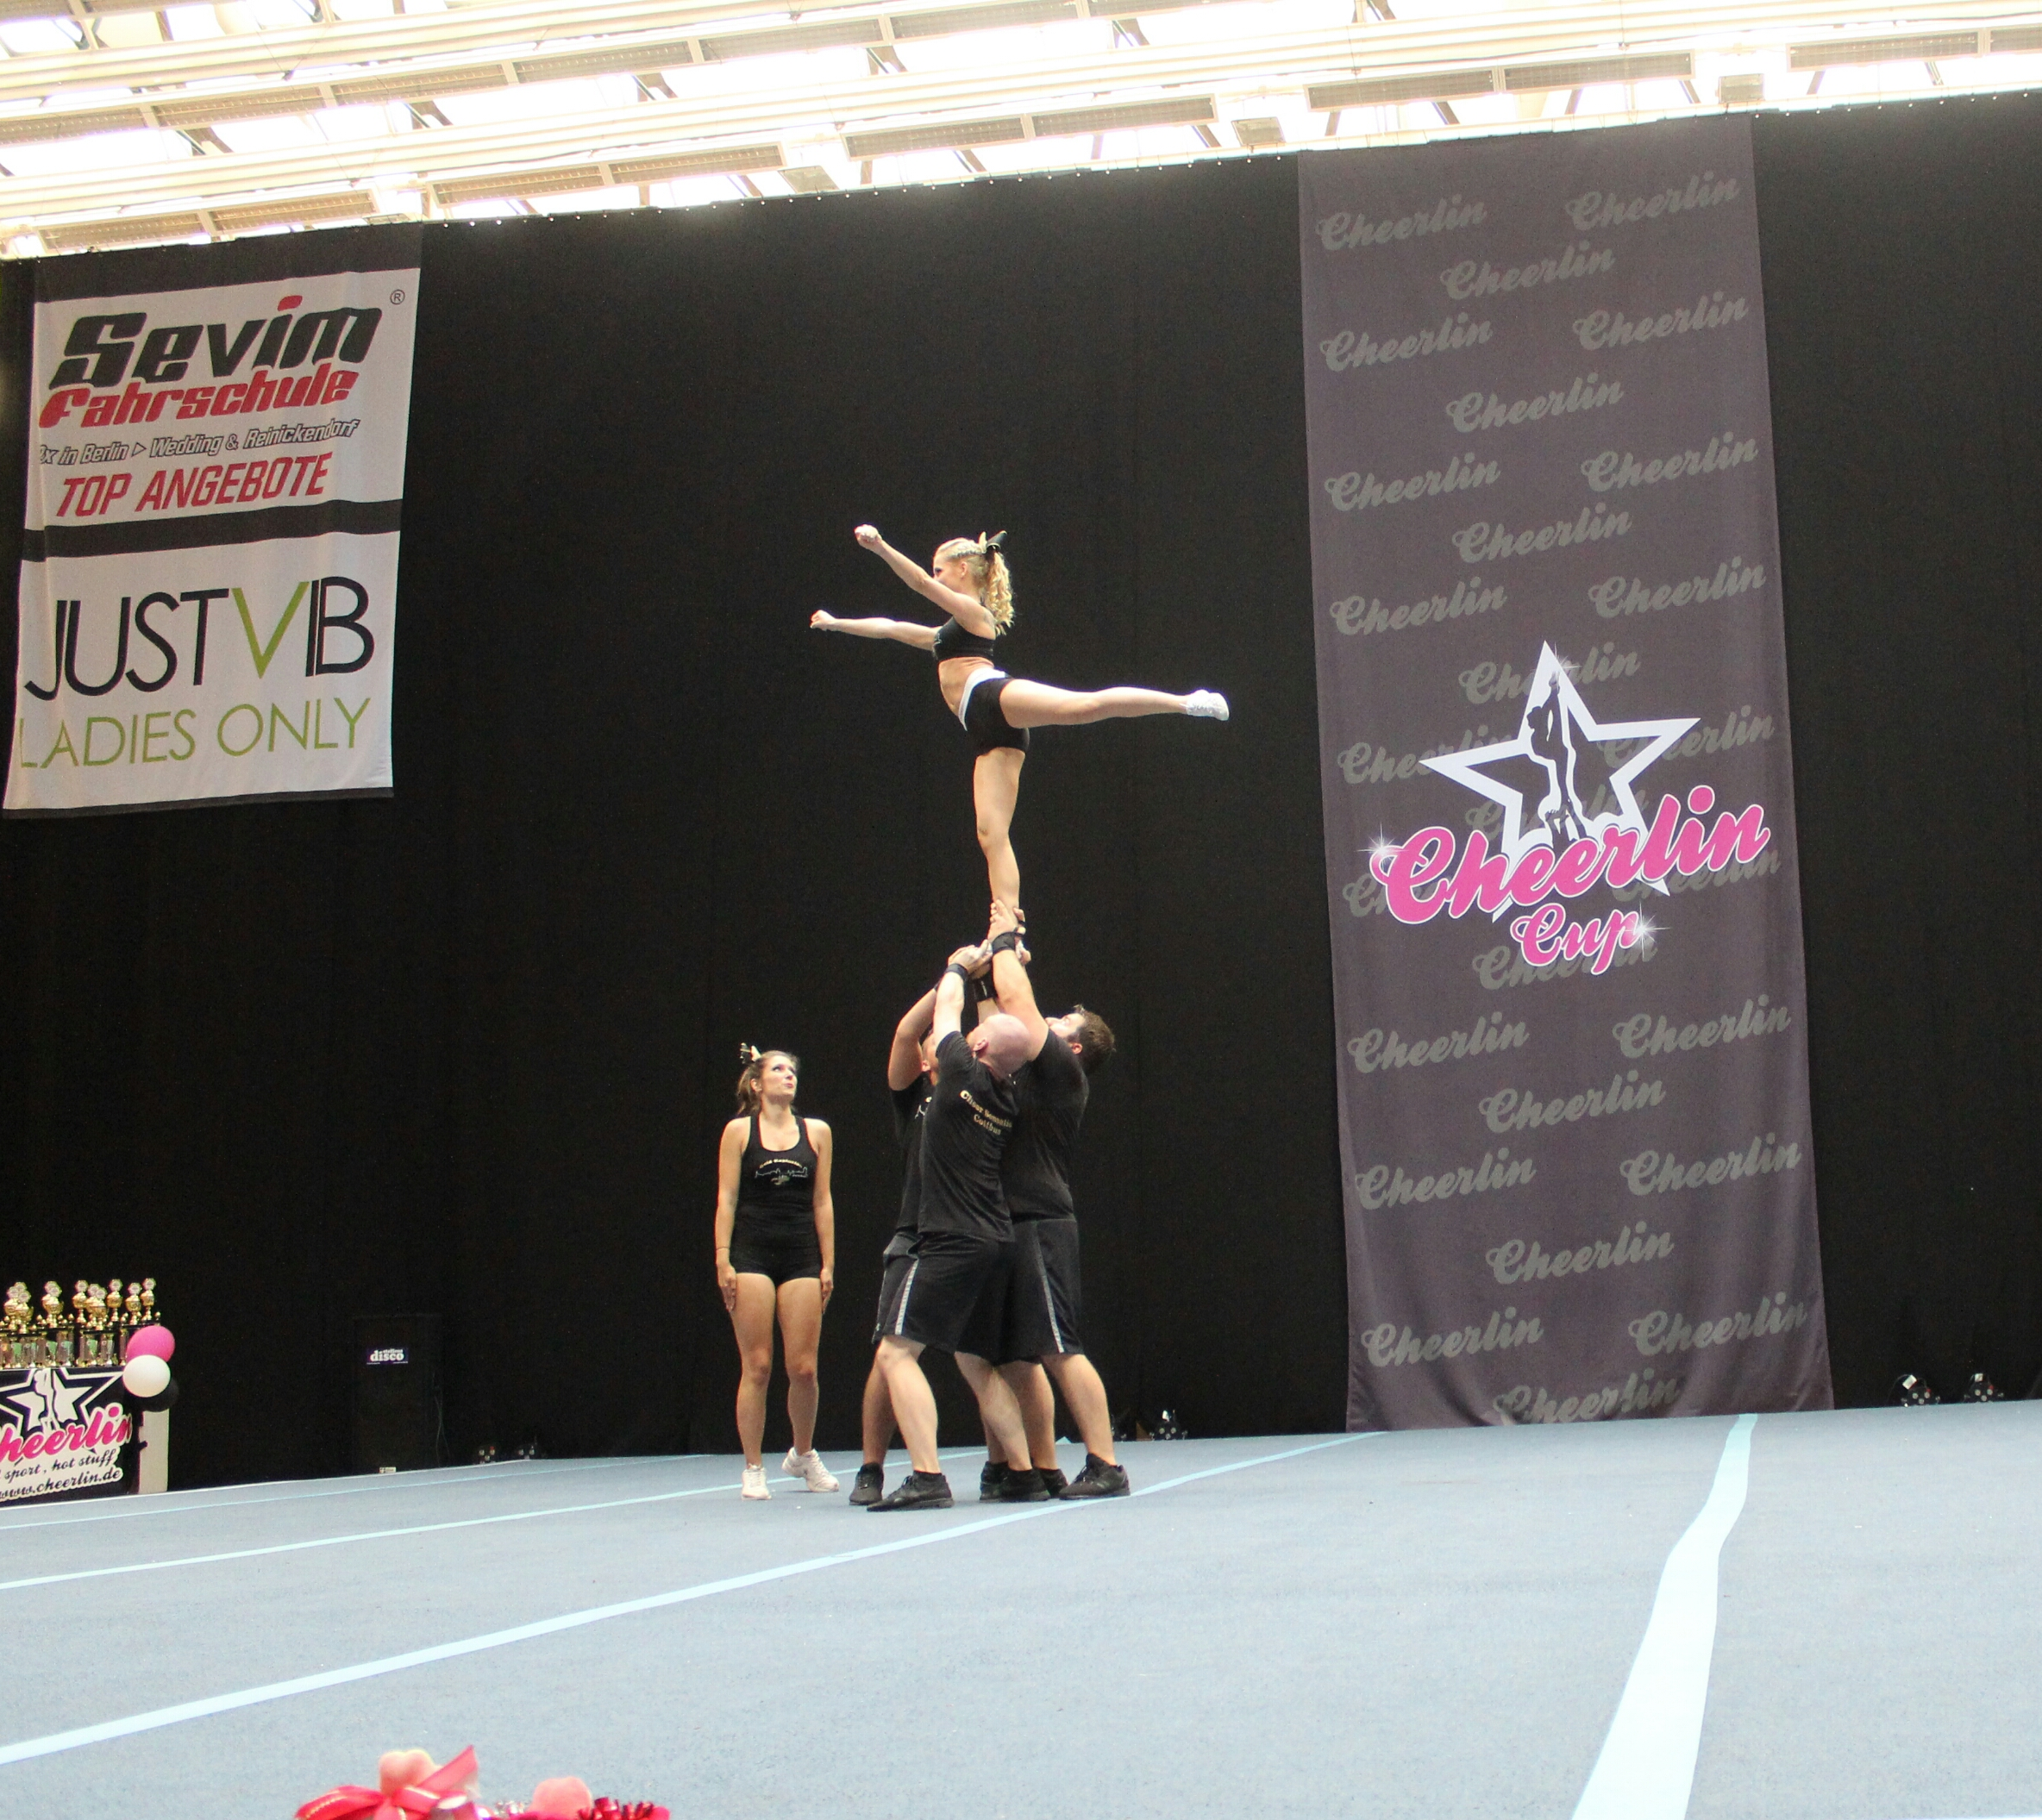 Cheerlin Cup Gold Explosion